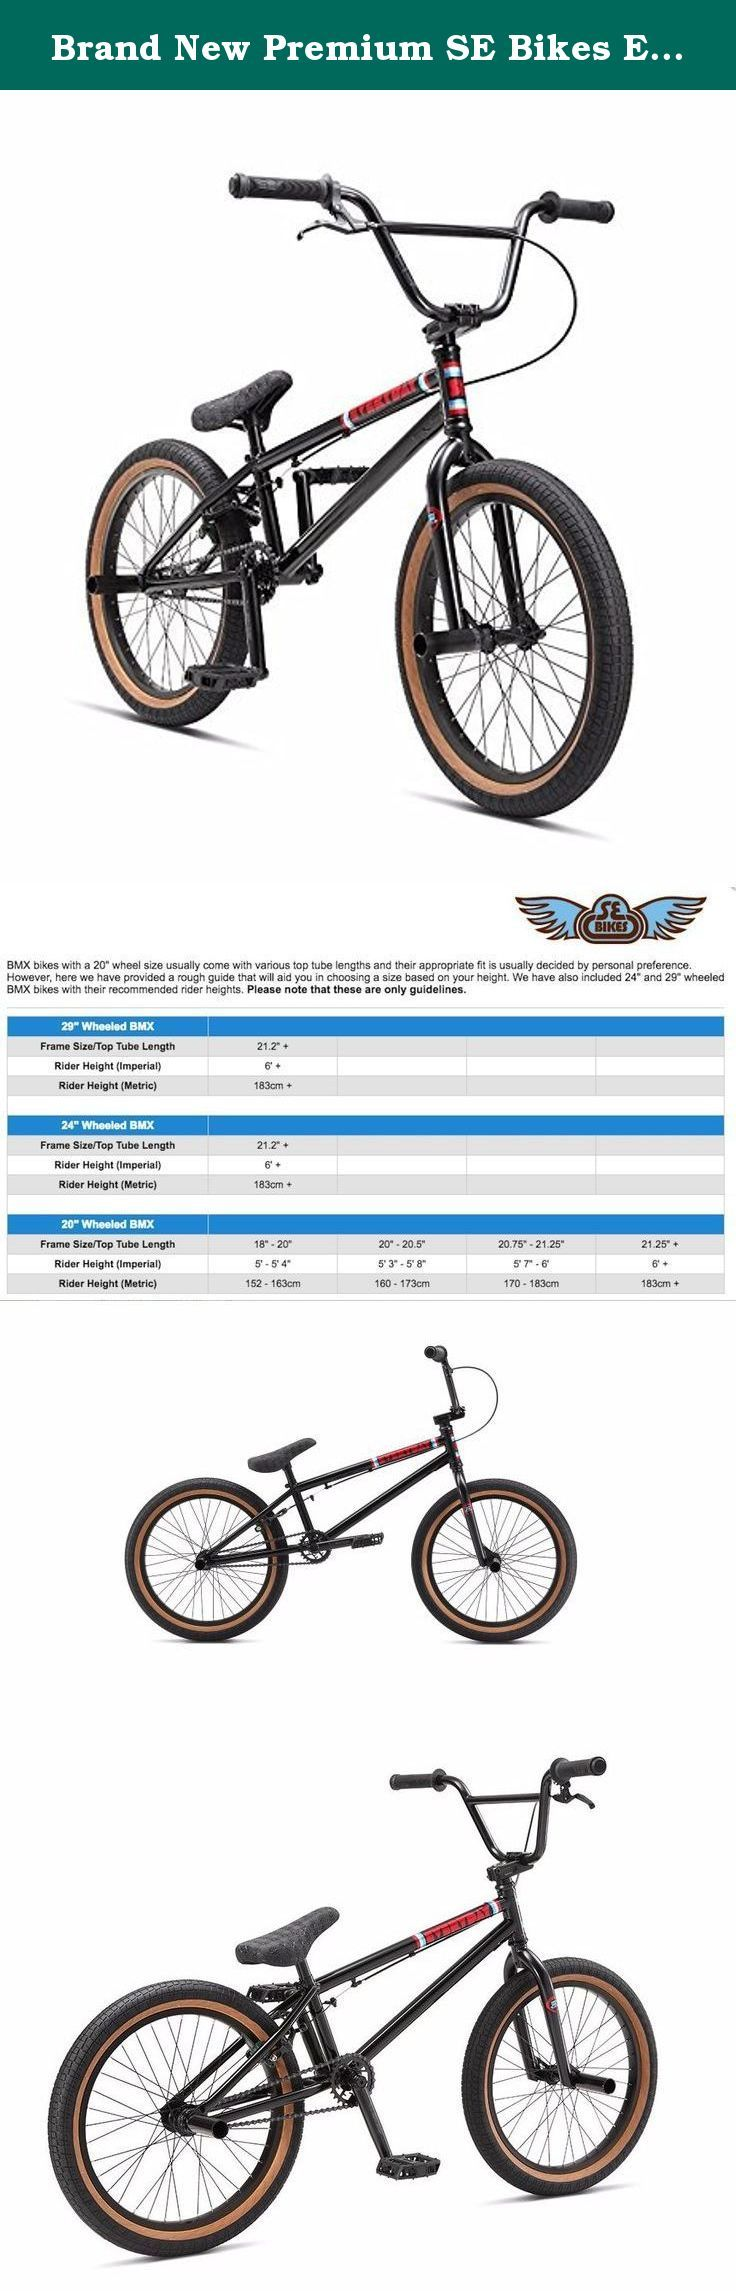 """Brand New Premium SE Bikes Everyday 20"""" BMX Bike 2017 Black. SE Racing Everyday BMX Bike The Everyday is built with some of the same parts as the Wildman, but what sets it apart is the ½"""" longer top tube and upgraded frame design. The integrated headtube, mid bottom bracket and removable brake mounts ensure not only a high-end look but also high-end performance. Specification: Wheelset: SE Alloy 36H 3/8"""" Front & 14mm Semi-Sealed Rear Hubs with Alex Y303 Alloy Rims, 9T Driver Tyres: Innova..."""